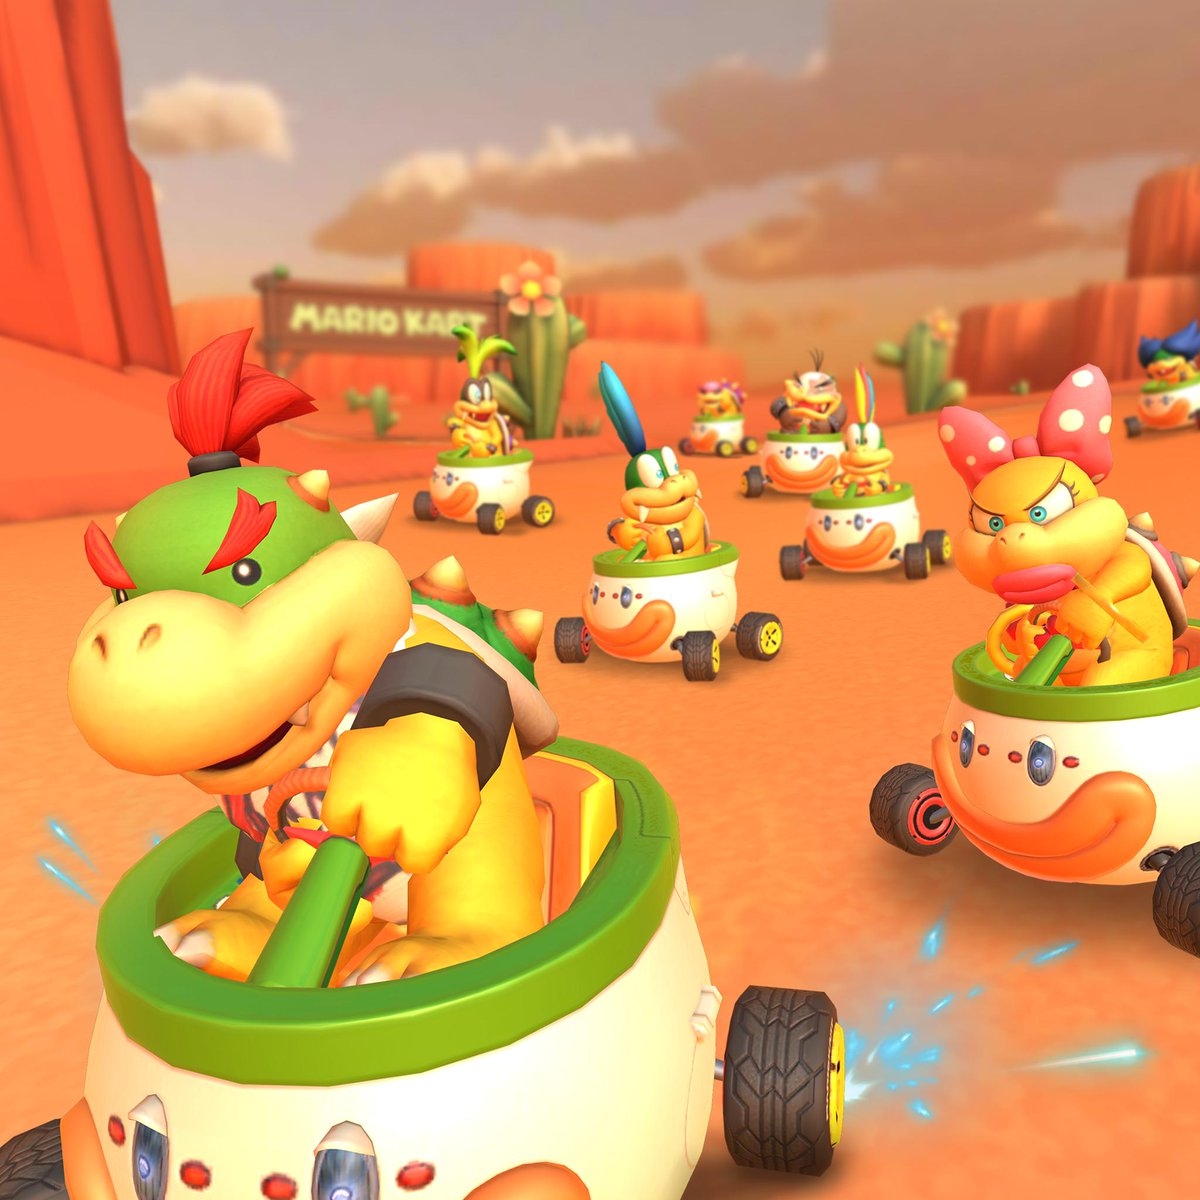 Mario Kart Tour On Twitter In Addition To The Recently